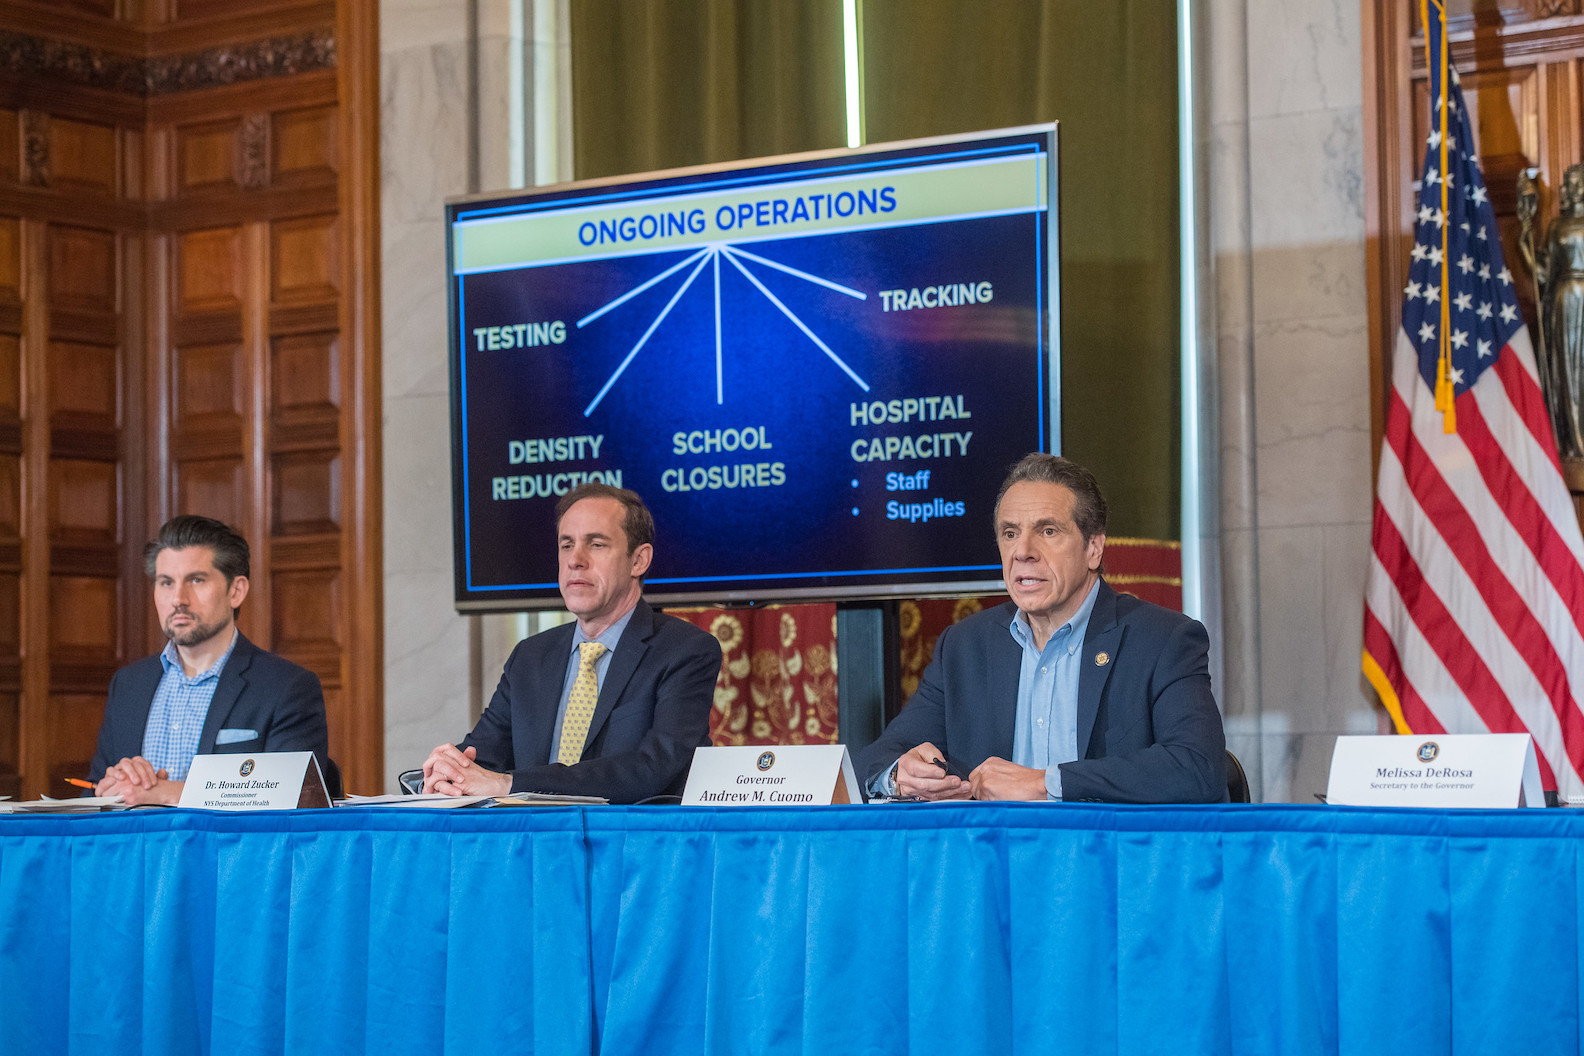 Gov. Andrew Cuomo holds a briefing on the coronavirus. He explained ongoing operations of testing, tracking, density reductions, school closures, and hospital capacity. (Photo credit: Darren McGee/Office of Governor Andrew Cuomo)